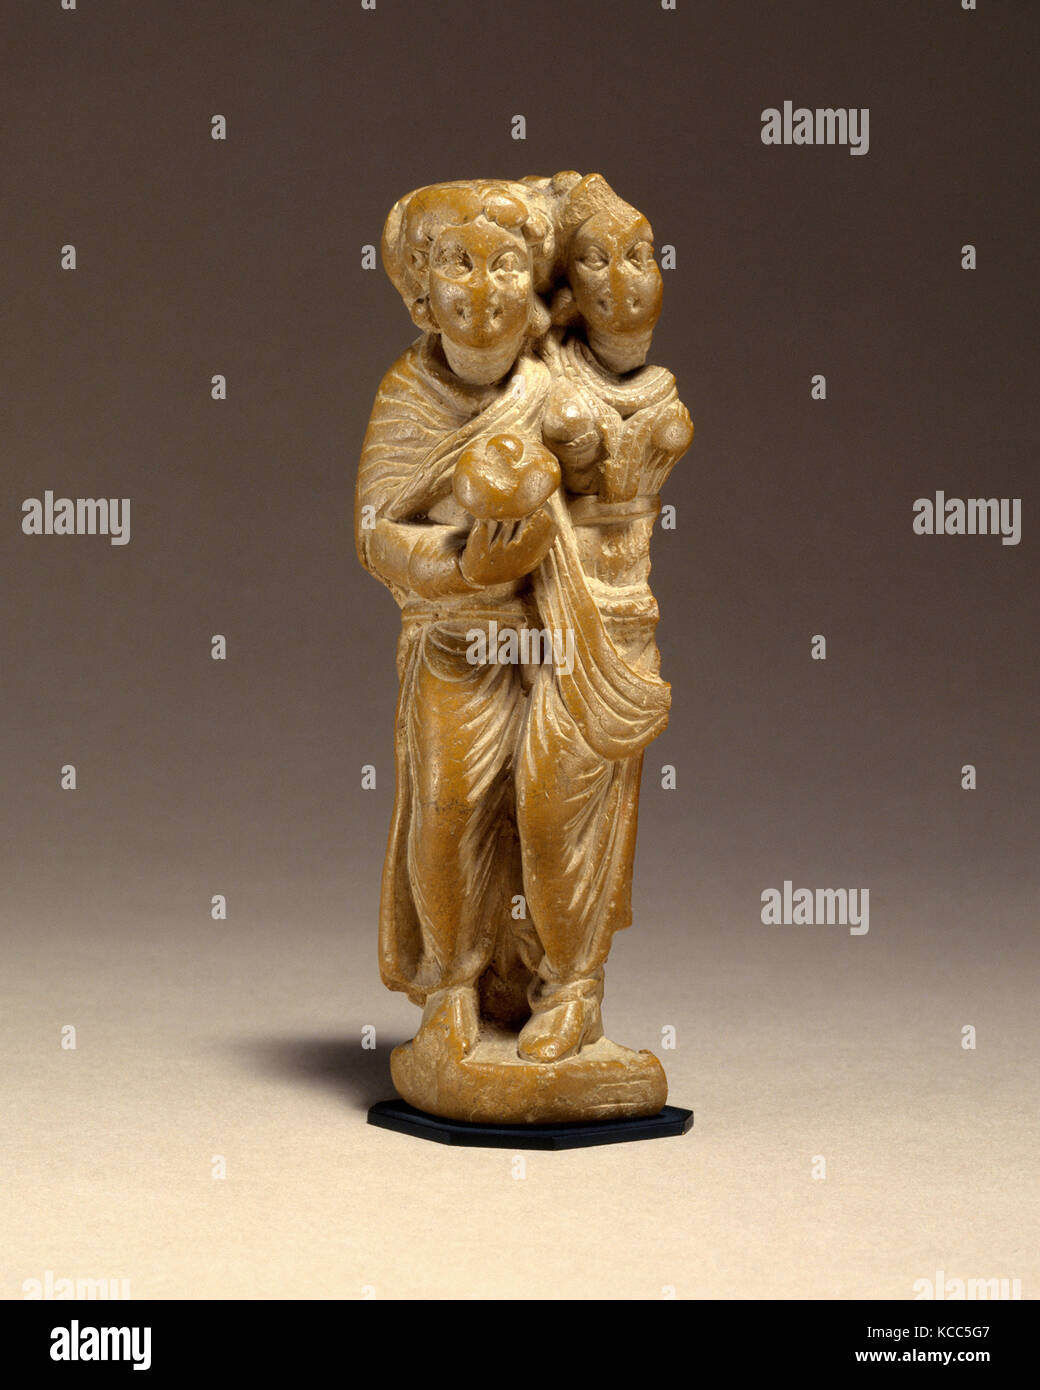 Two Standing Women, ca. 1st century B.C., Pakistan (ancient region of Gandhara), Phyllitic schist, H. 4 3/8 in. - Stock Image